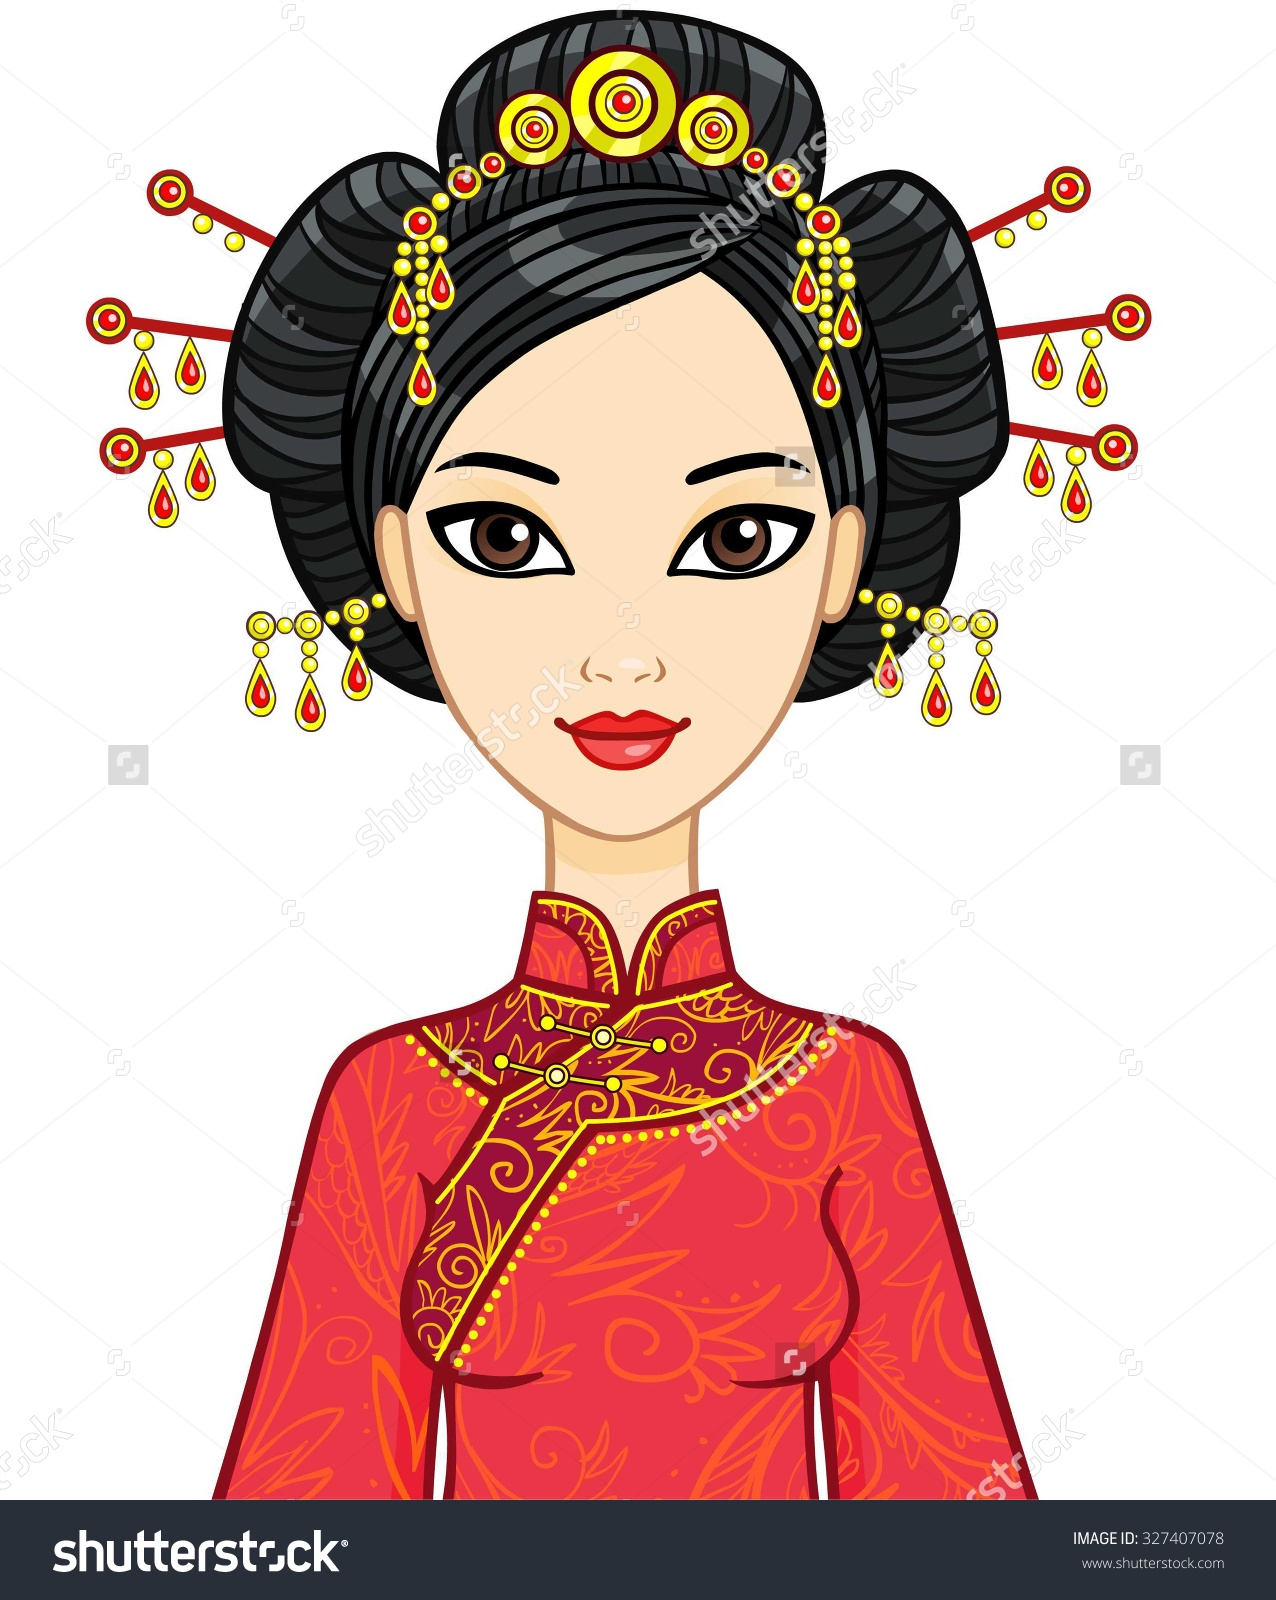 Kimono clipart chinese woman Traditional Clothes Vector clipart Portrait